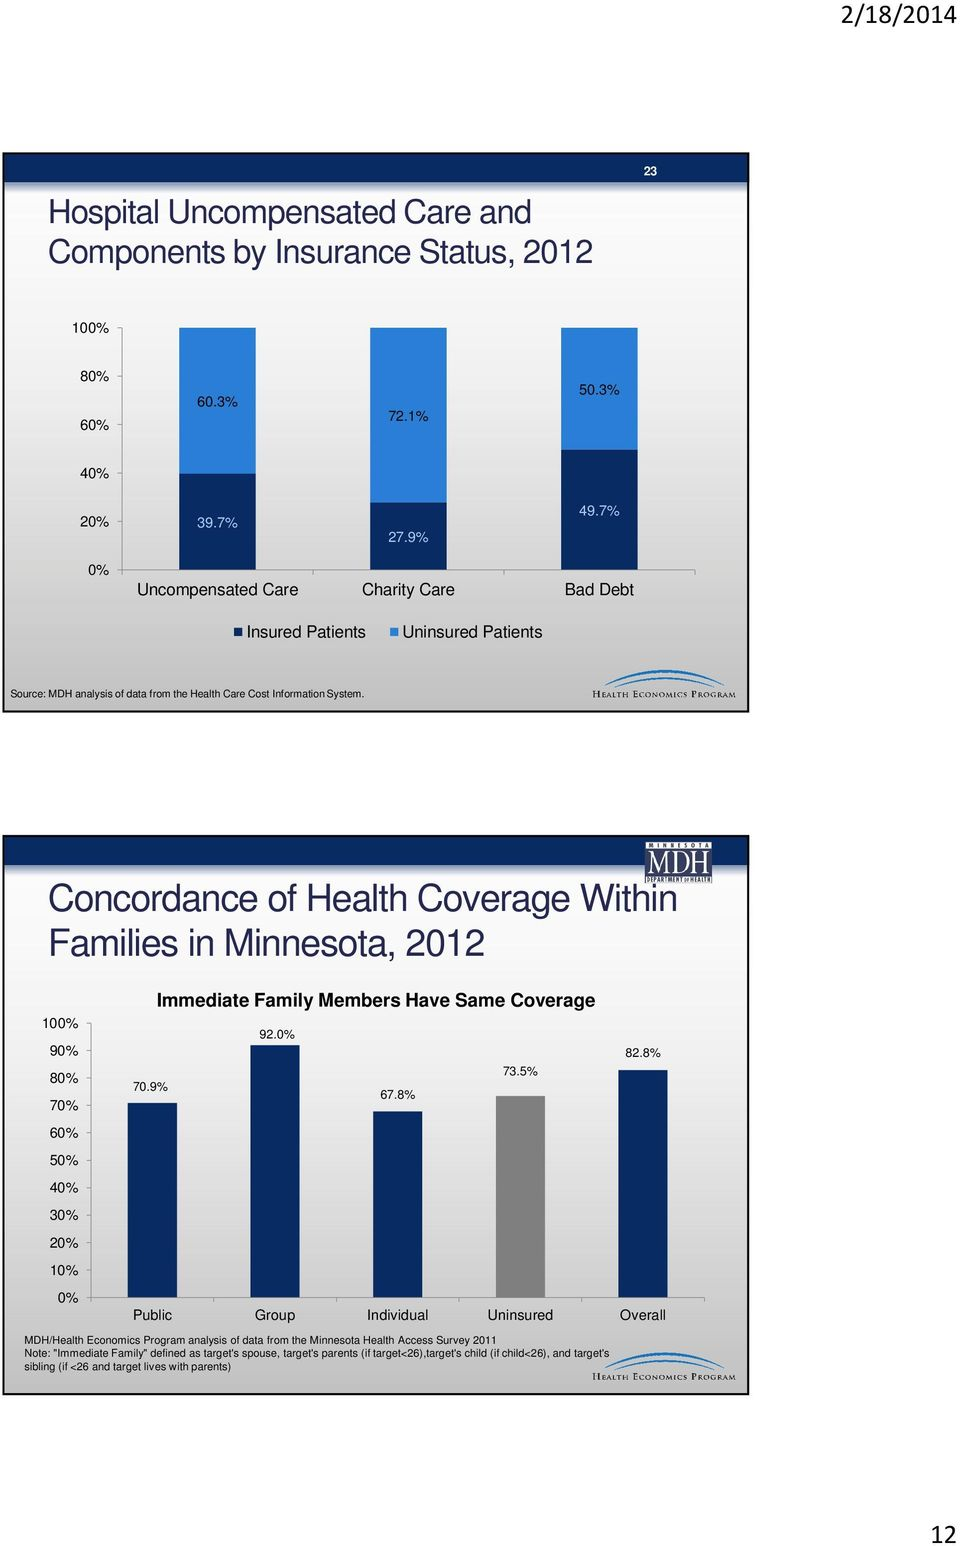 Concordance of Health Coverage Within Families in Minnesota, 2012 10 9 8 7 6 5 4 3 2 1 70.9% Immediate Family Members Have Same Coverage 92. 67.8% 73.5% 82.